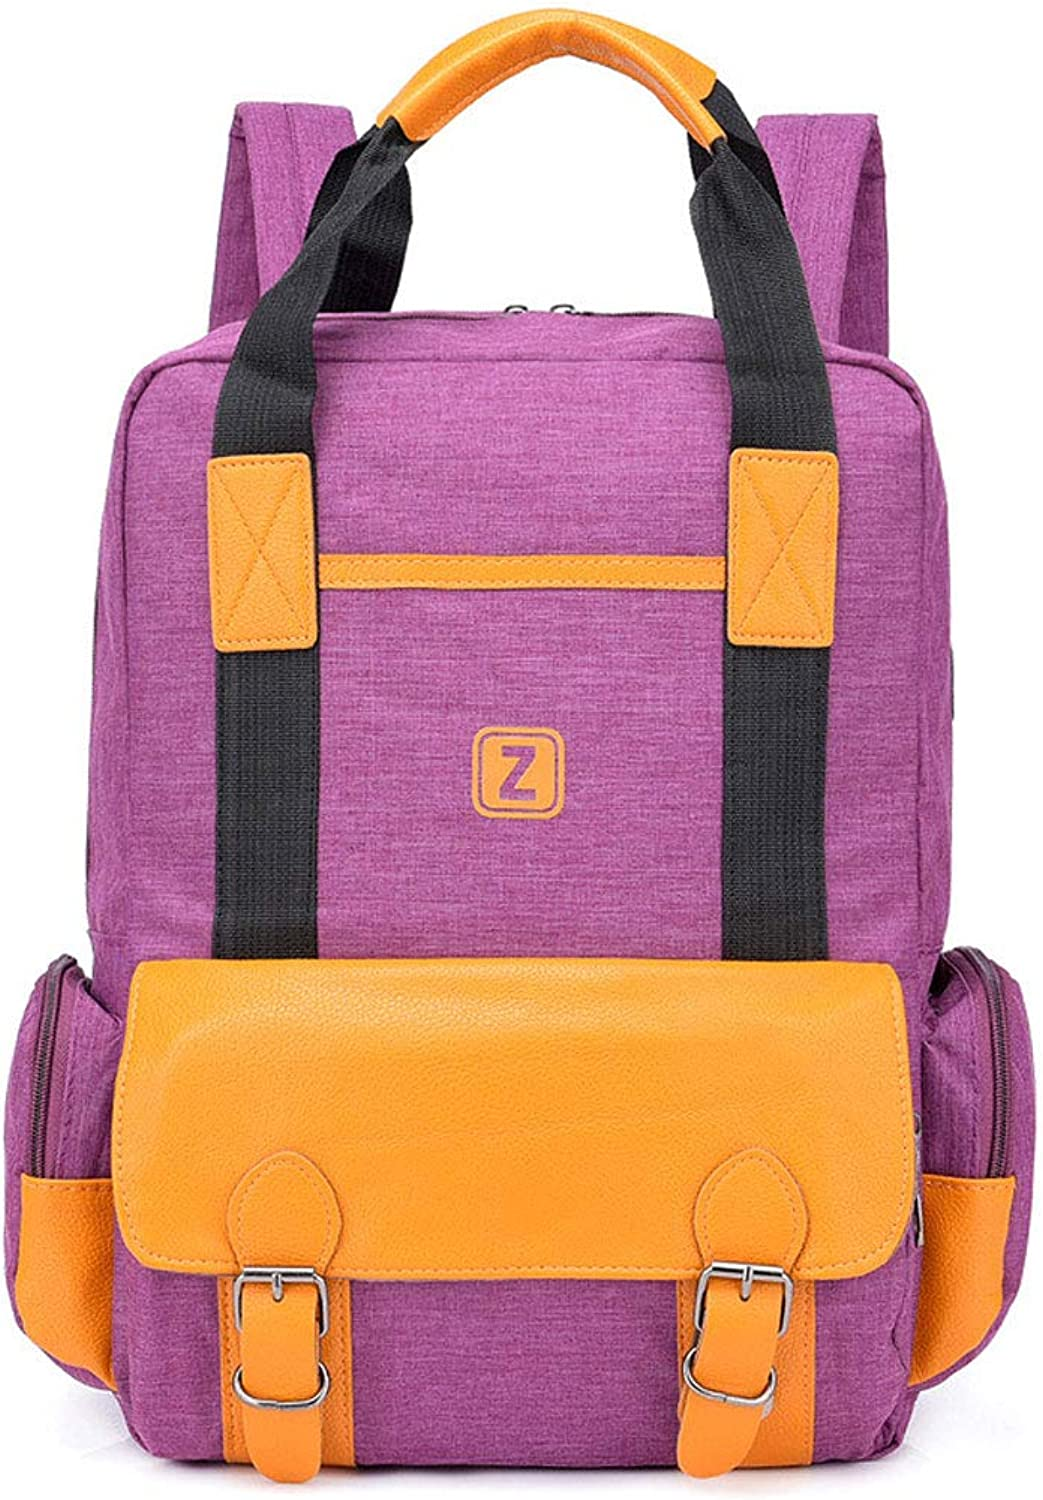 Backpack Female Sports Outdoor Fashion USB Charging Backpack Male Oxford Cloth Waterproof Bag Tide Student Couple Bag,Purple